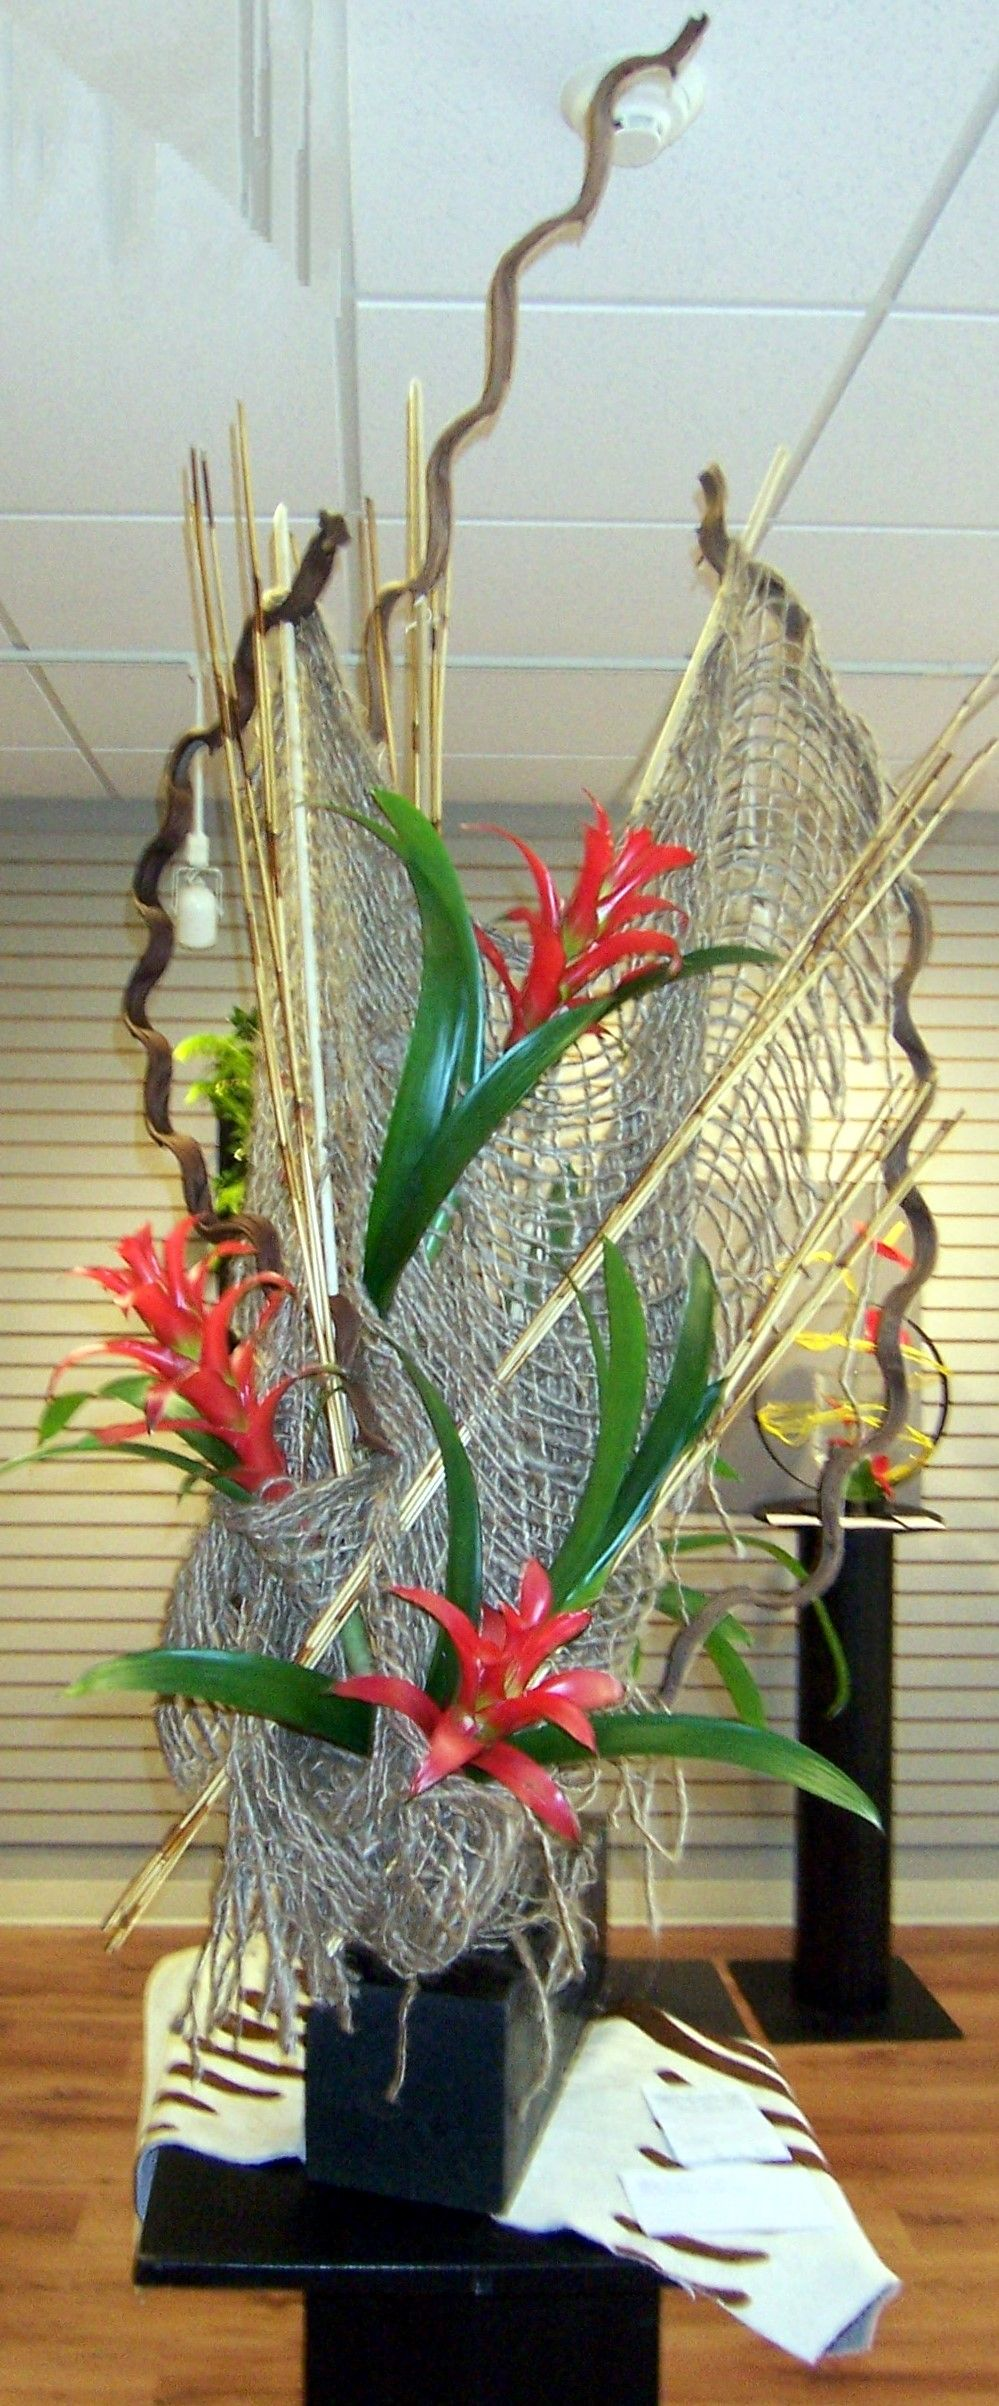 "The Garden Club of Ellijay's flower show, ""Cherokee Beauty"" First place Armature winner, Frankie Willis"